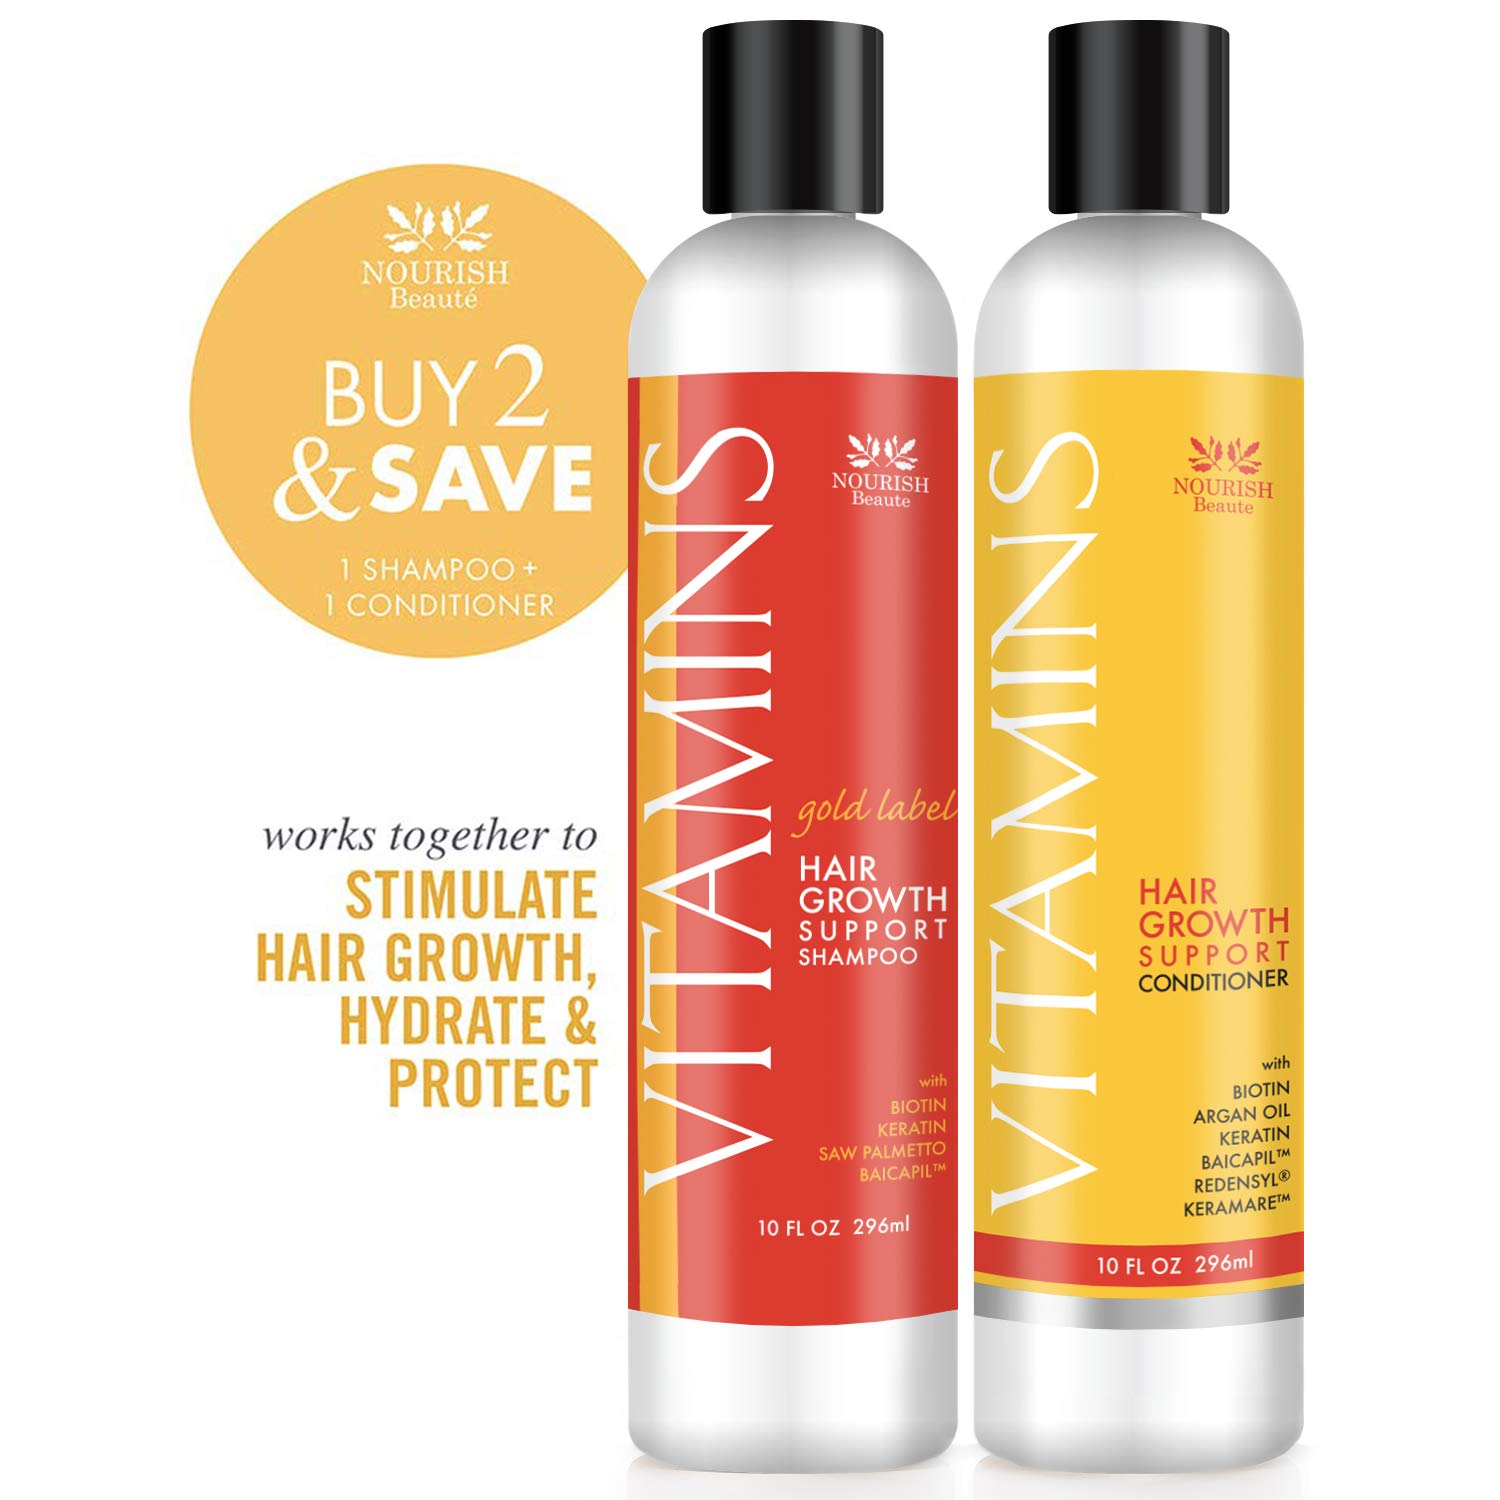 Nourish Beaute Vitamins Premium Shampoo and Conditioner for Hair Loss that Promotes Hair Regrowth For Men and Women, 1 10 Ounce